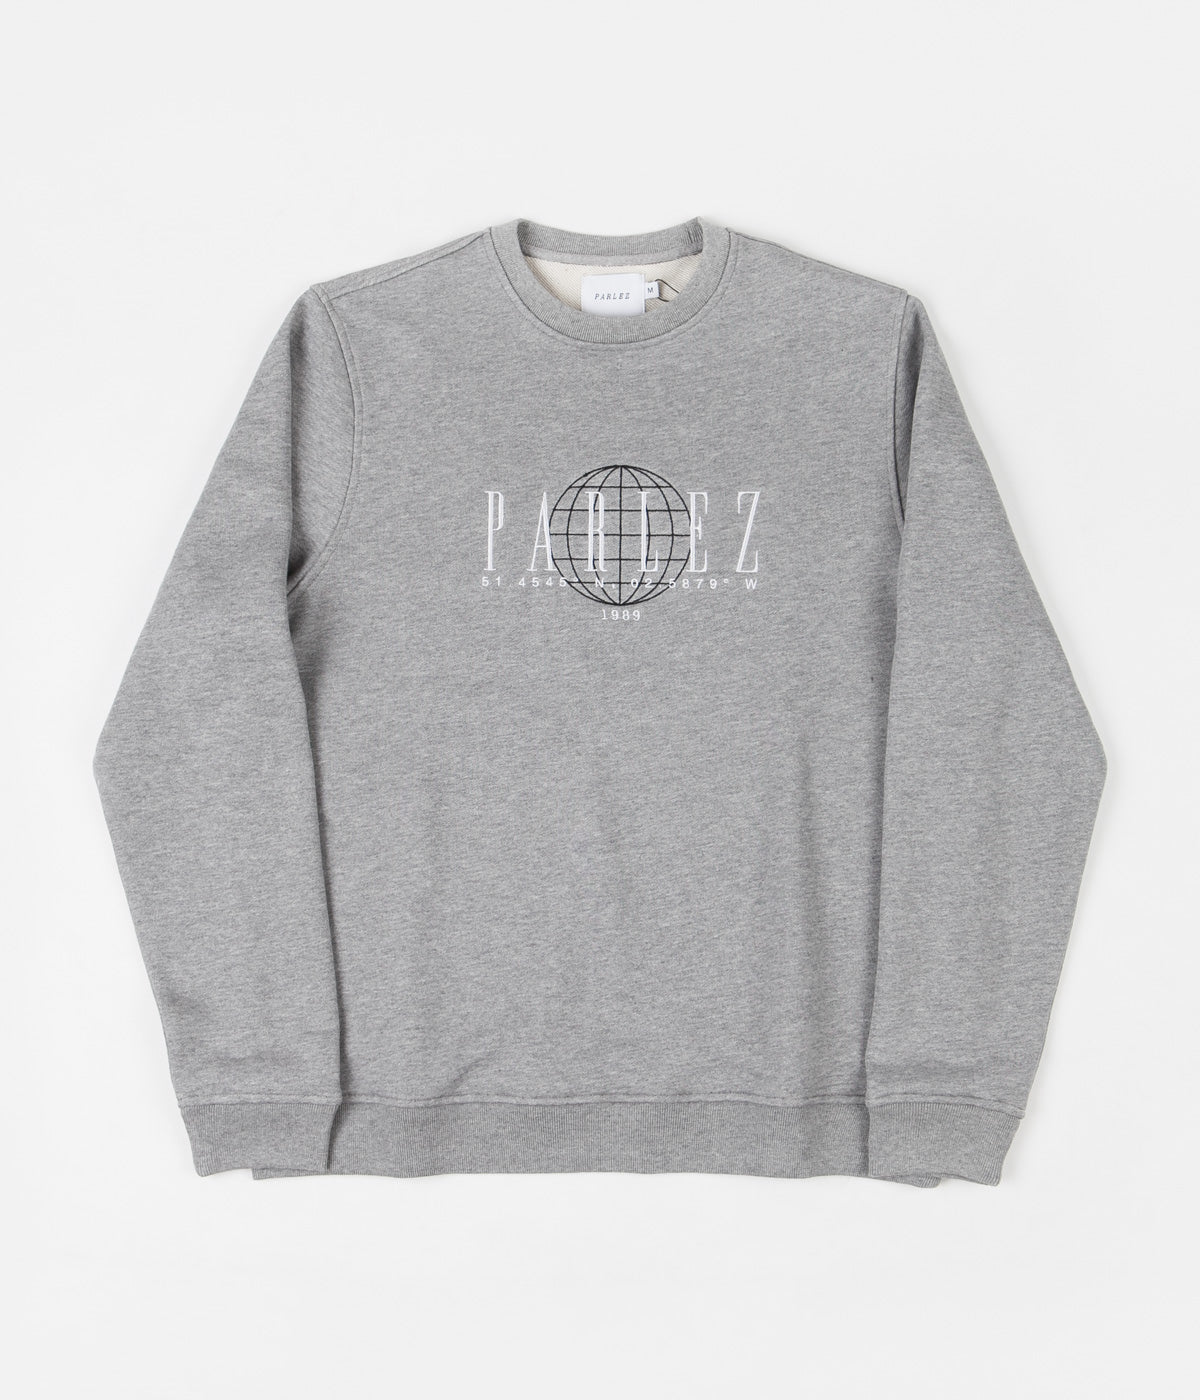 Parlez Global Crewneck Sweatshirt - Heather